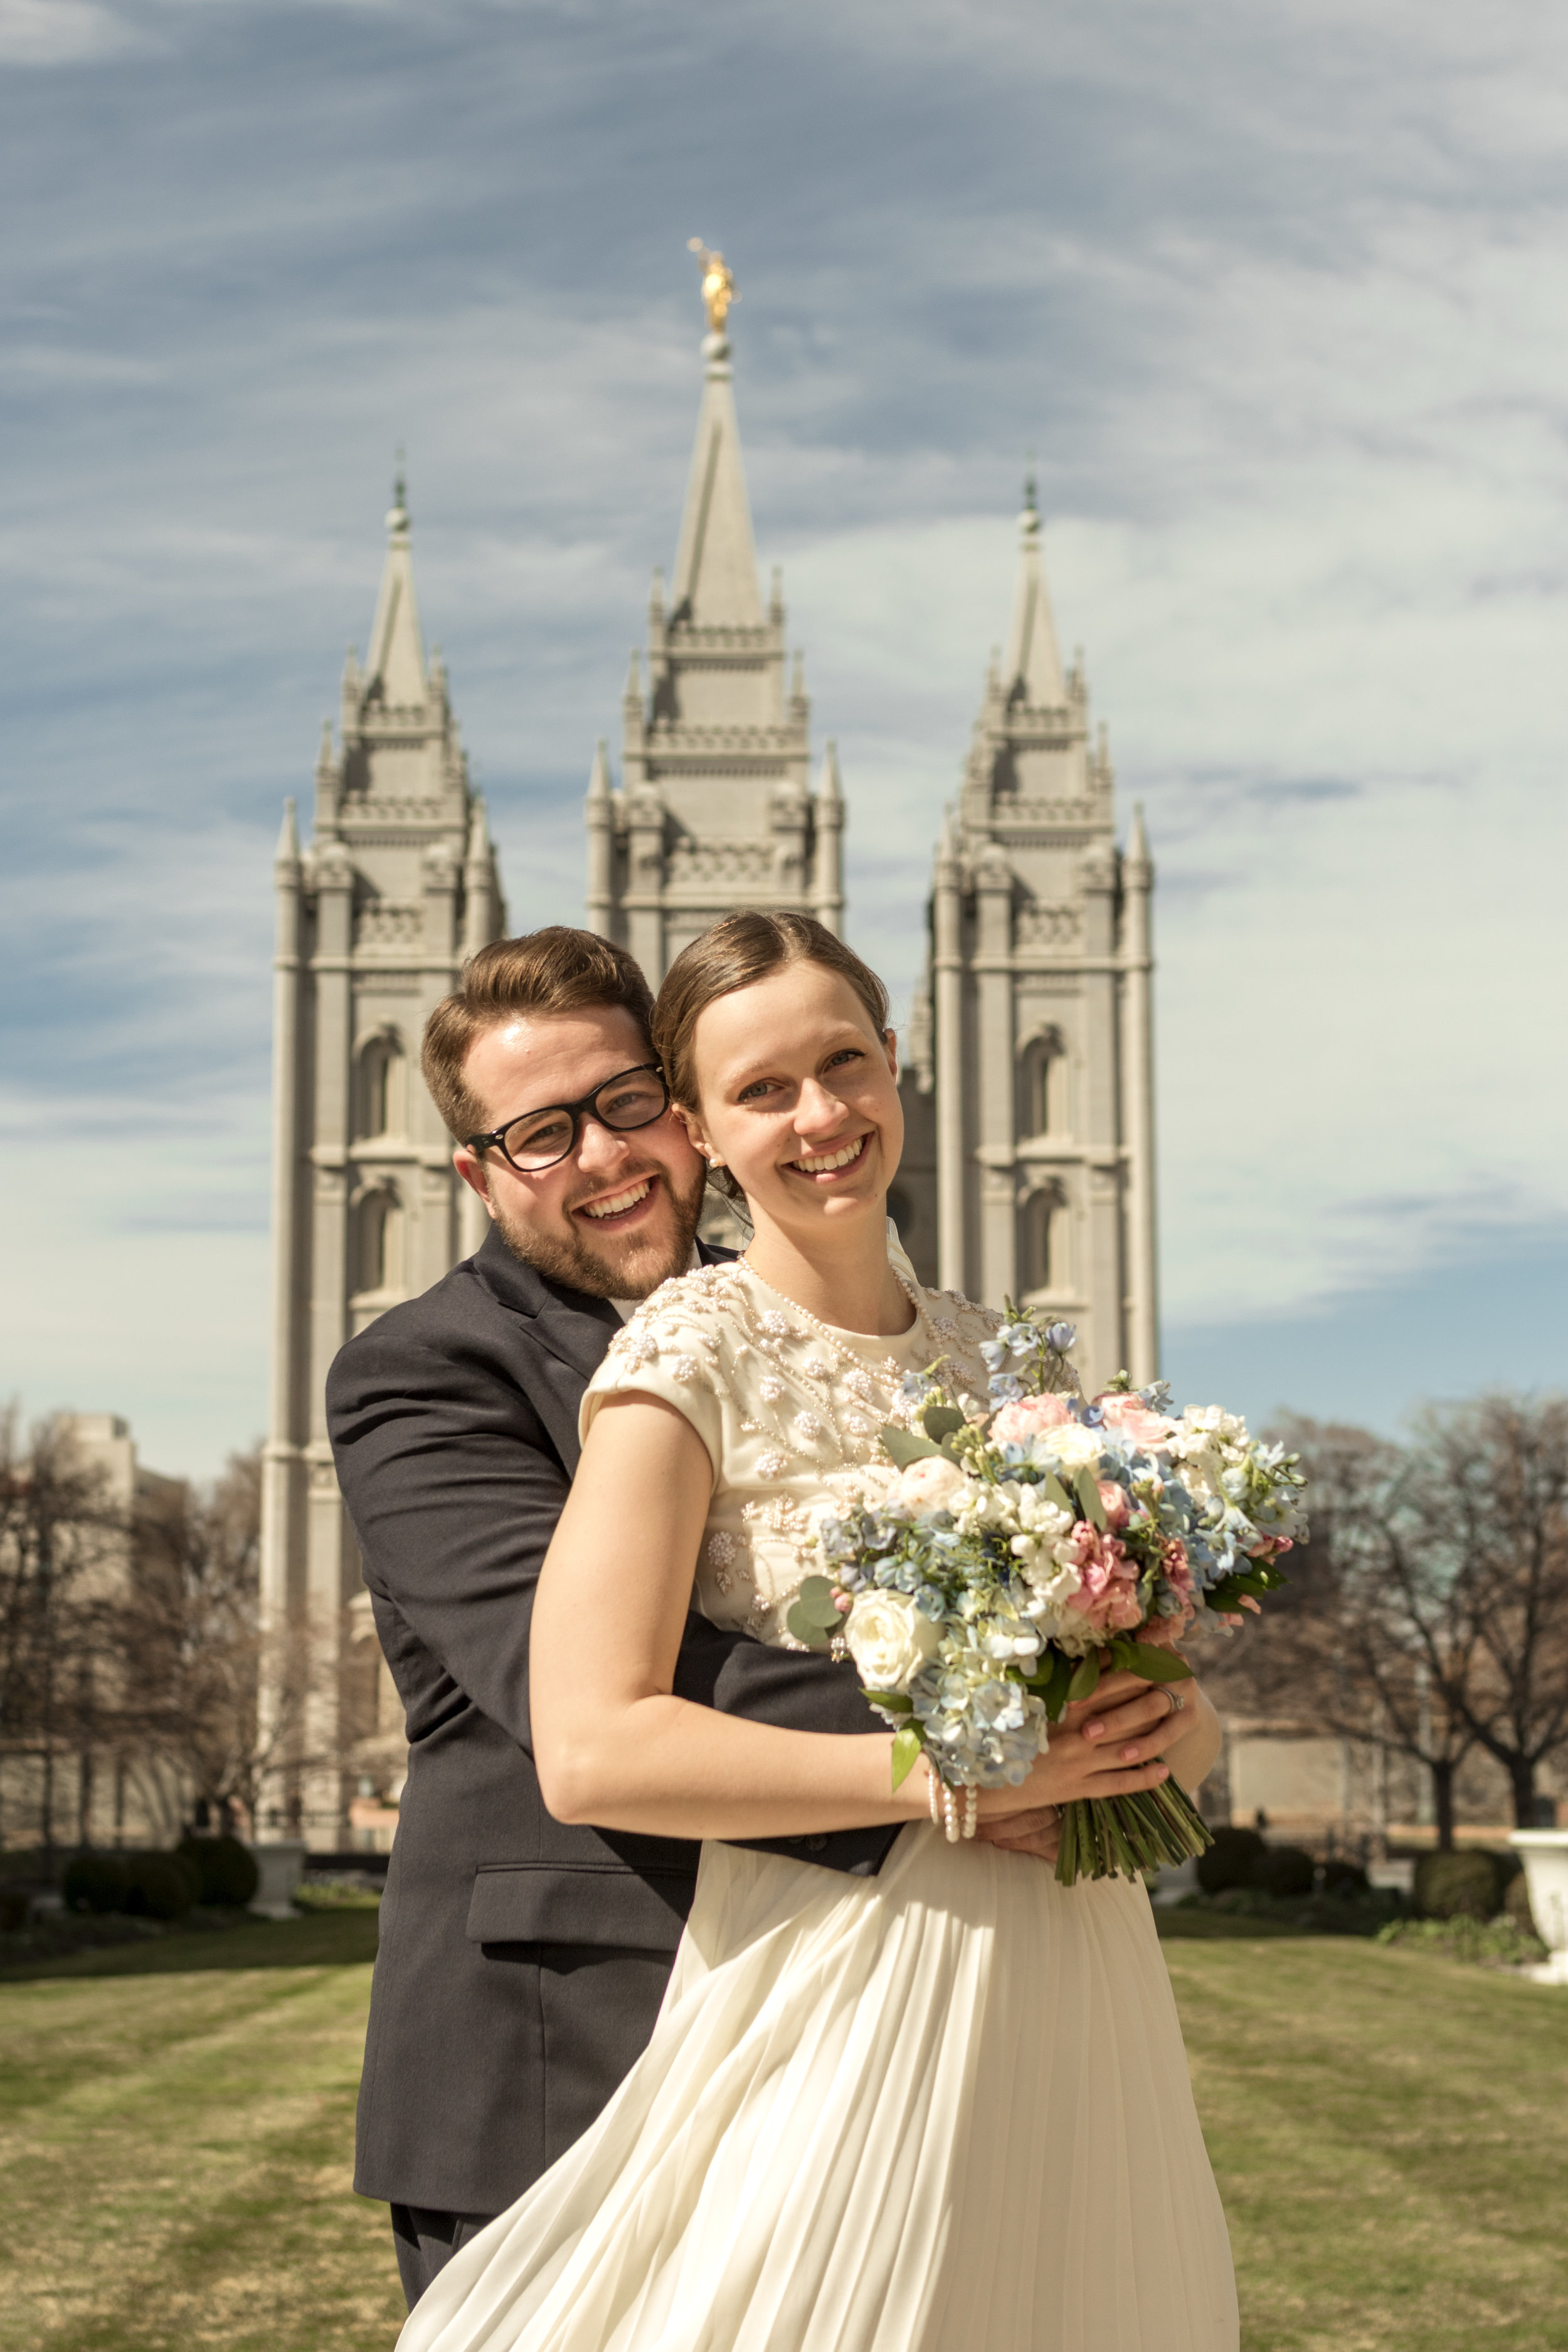 Utah Spring Wedding at the Salt Lake City Temple by Bri Bergman Photography07.jpg